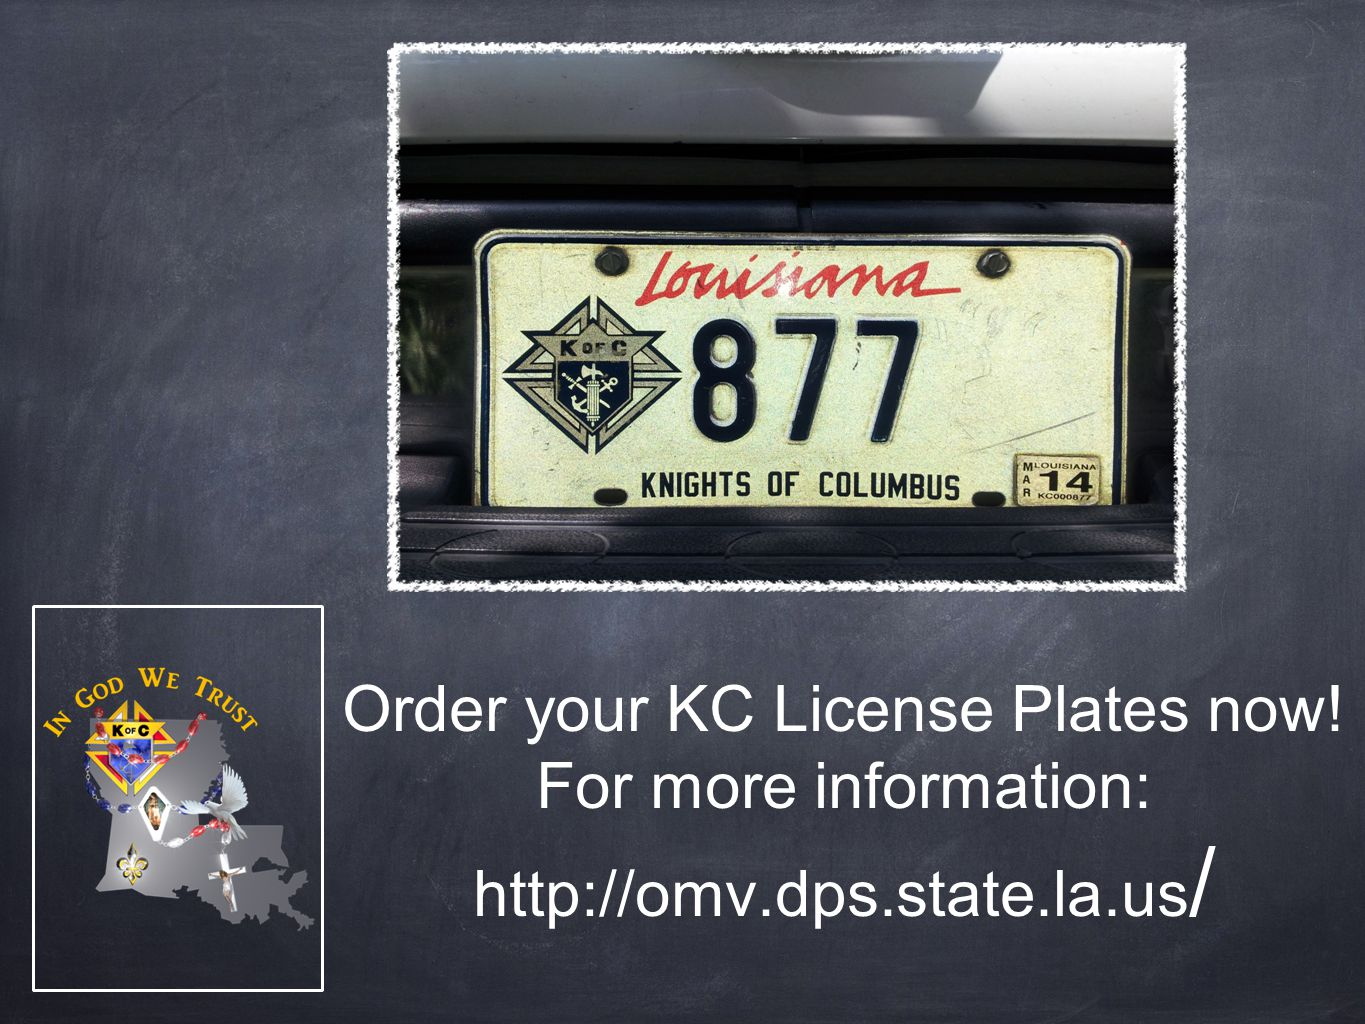 Order your KC License Plates now! For more information: http://omv.dps.state.la.us /